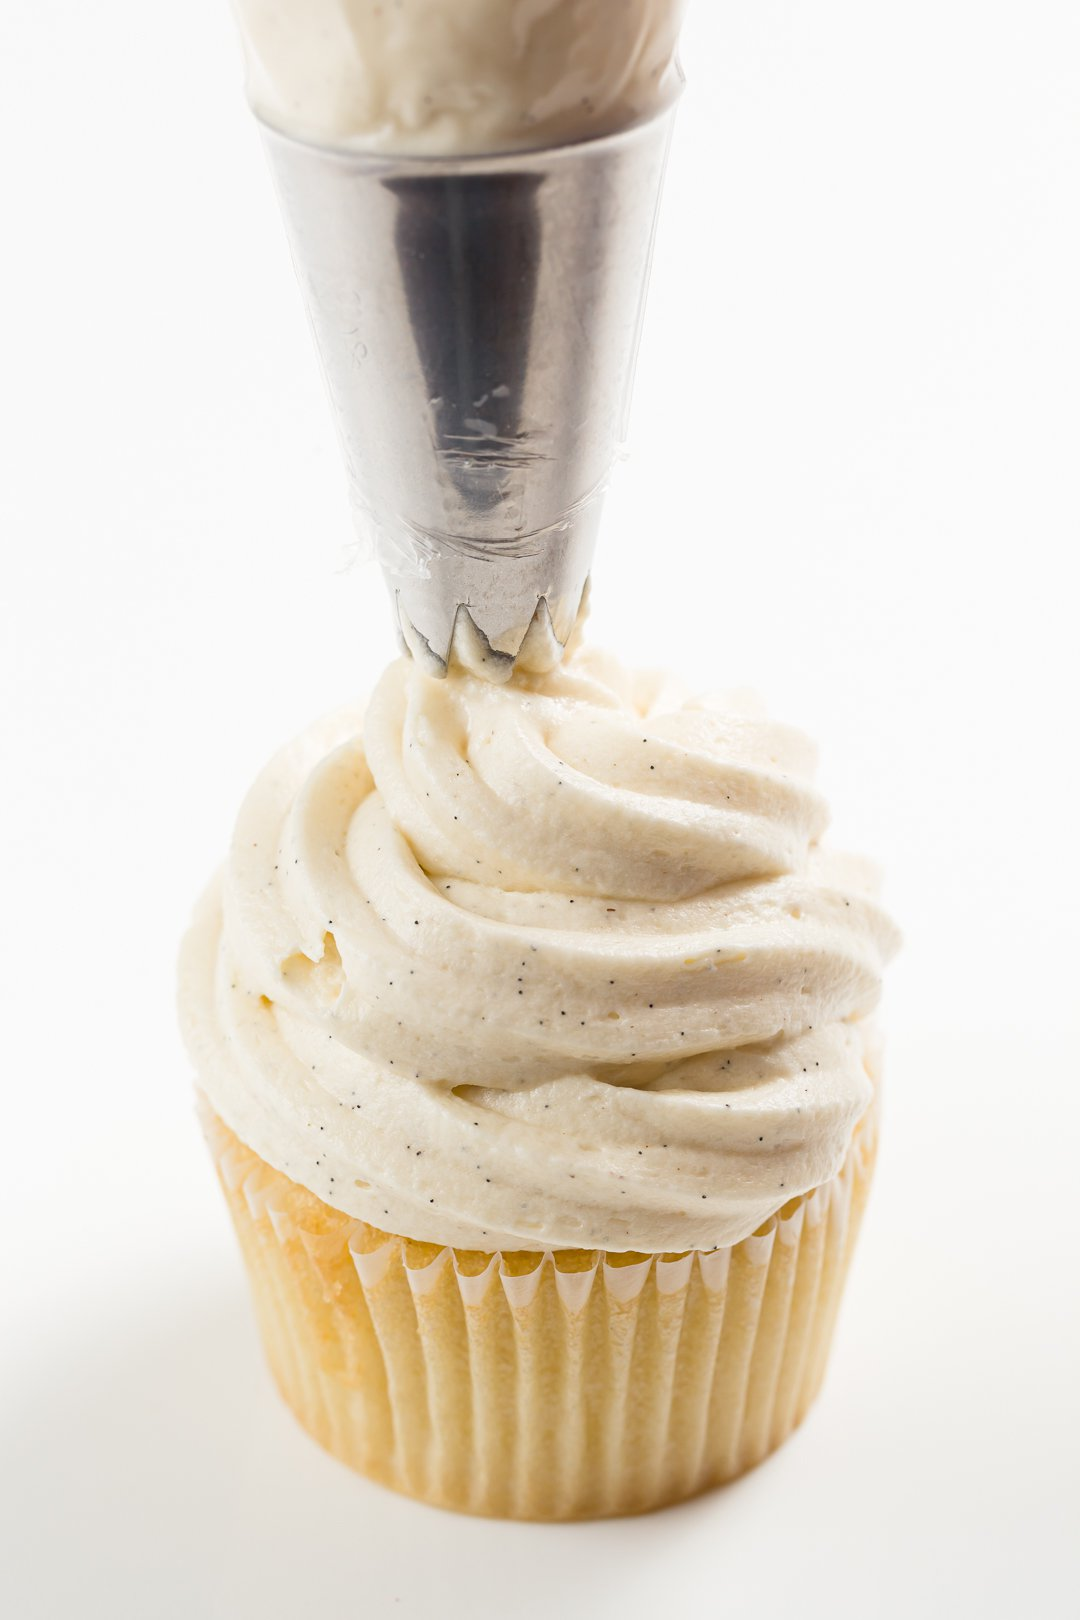 Piping sour cream frosting on a cupcake